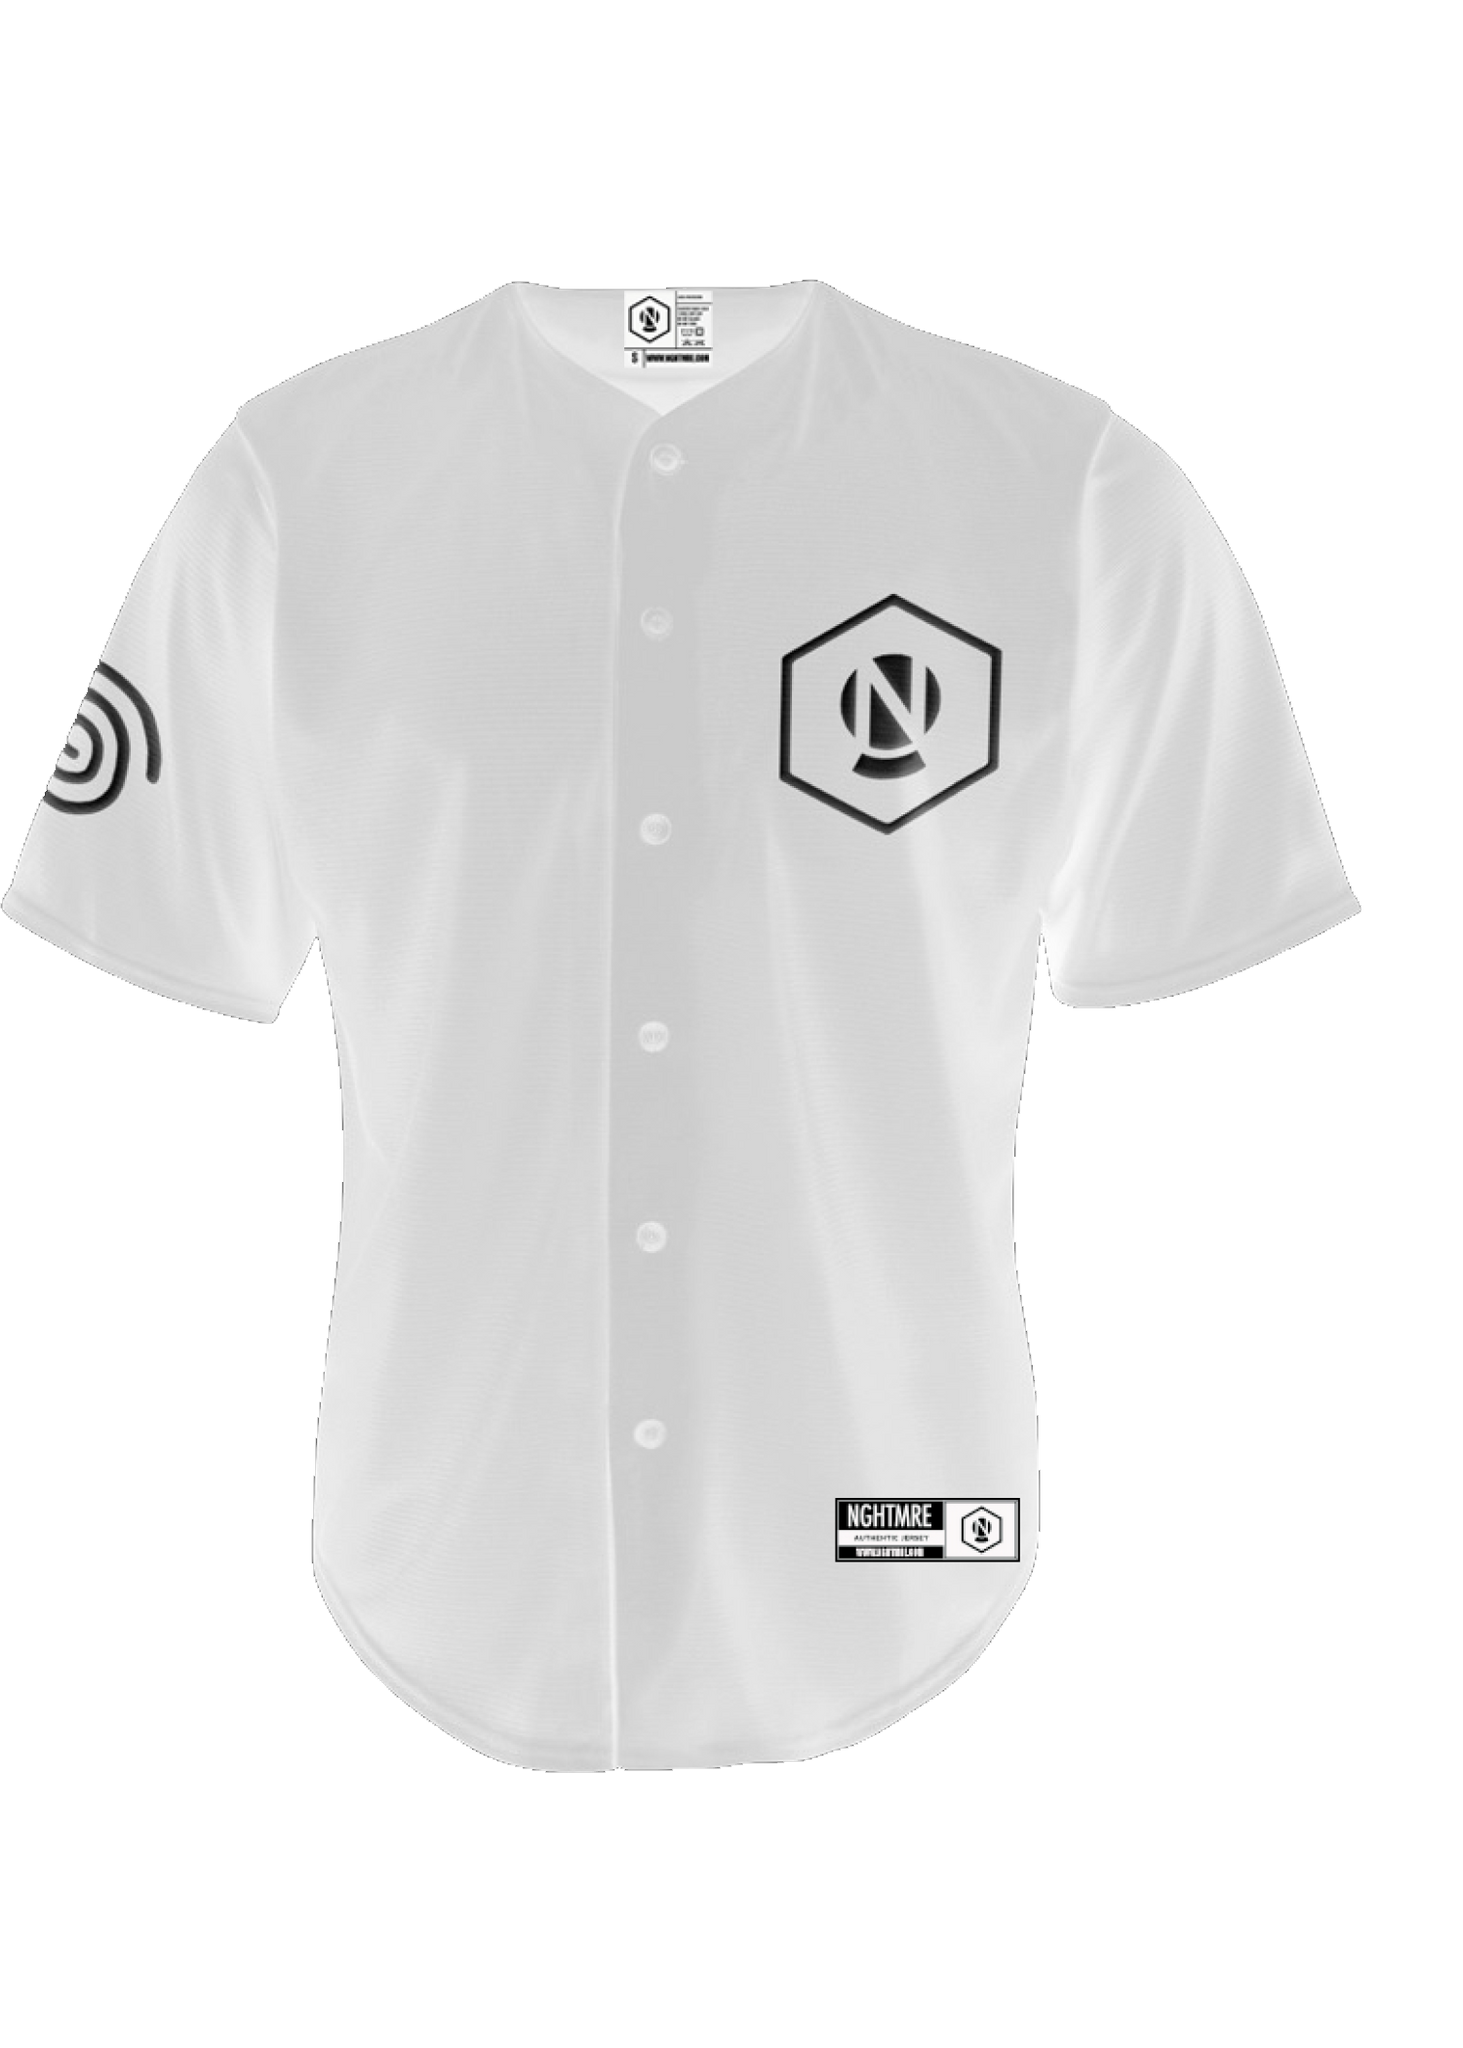 NGHTMRE Jersey White